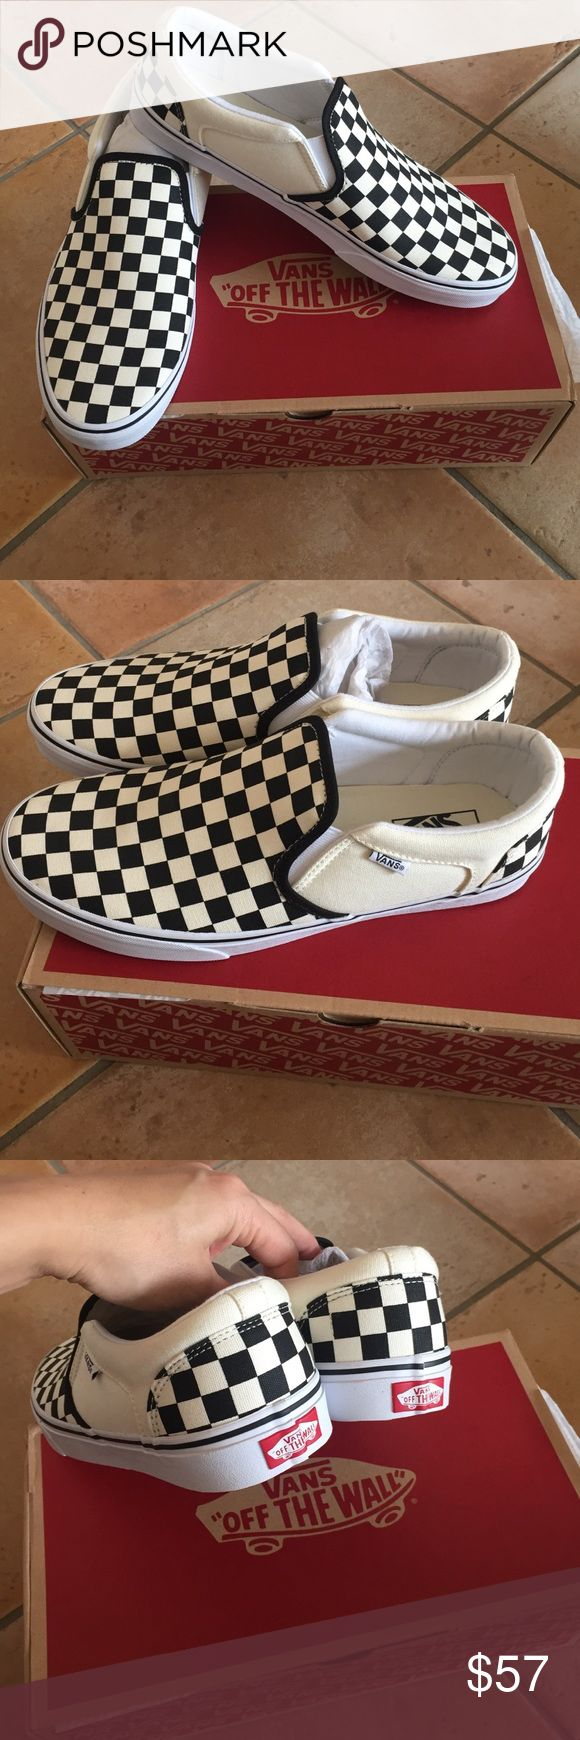 New Men's Vans shoes New with Box Checkered Print New Men's Vans shoes black checkered print New with Box.  I ship same or Next day :) Vans Shoes Sneakers